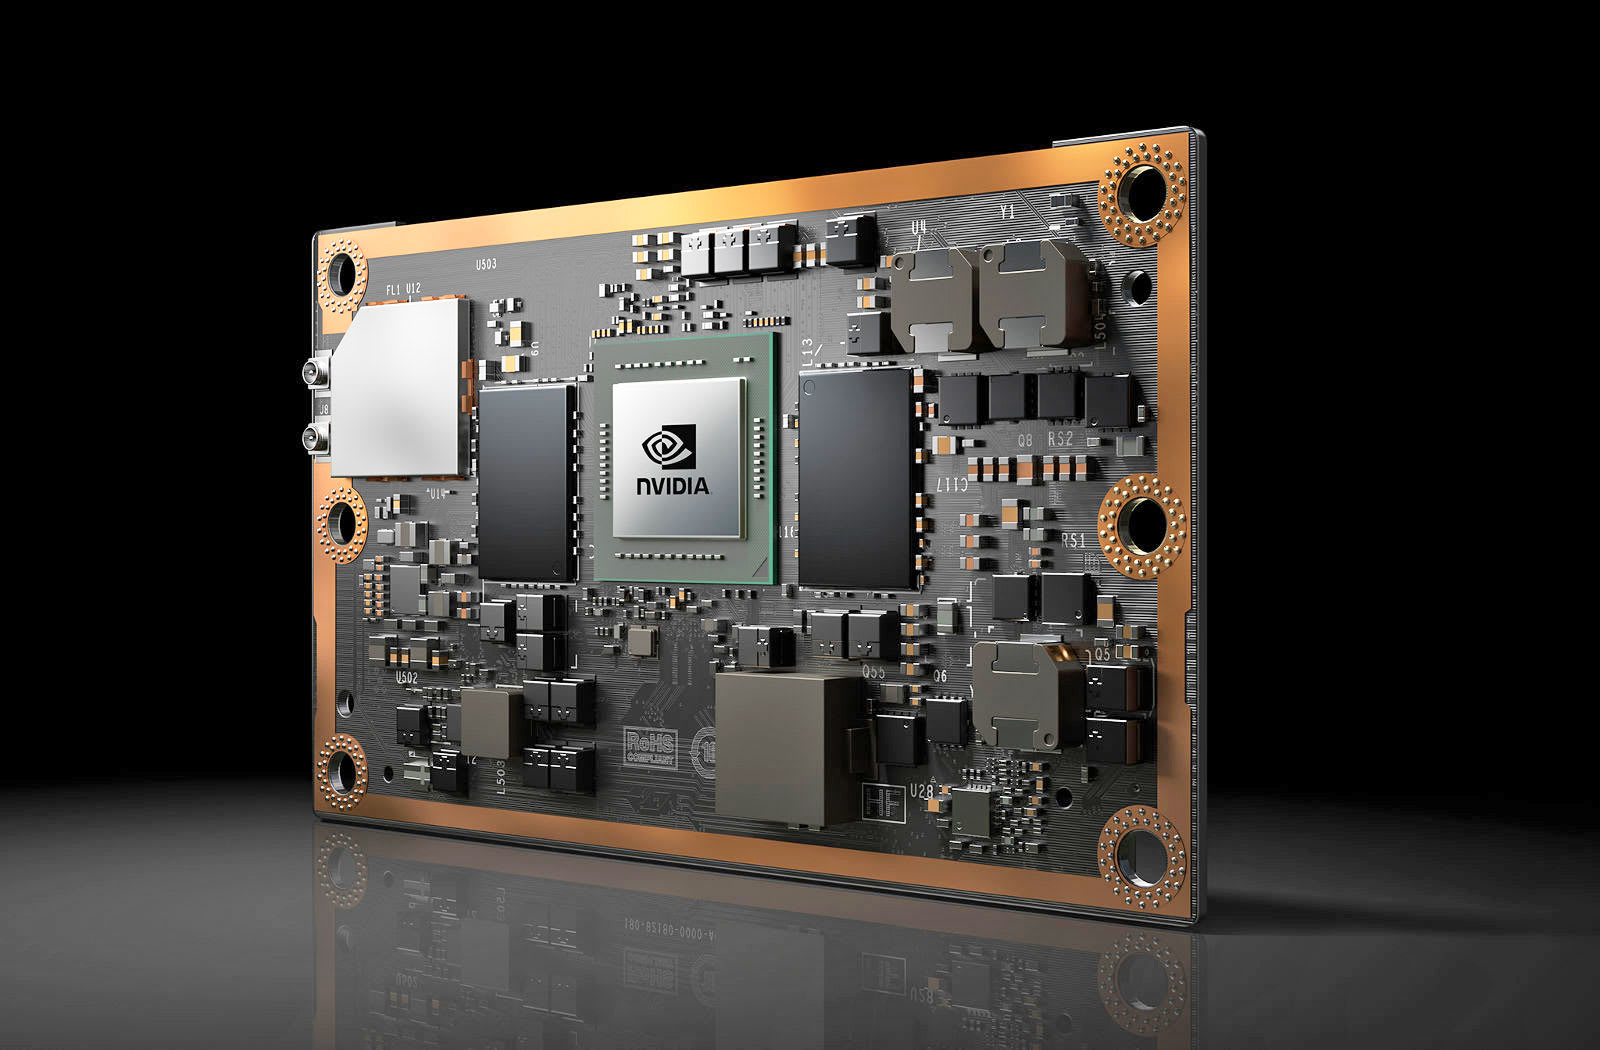 NVIDIA launches Jetson TX2 platform for drones and robots